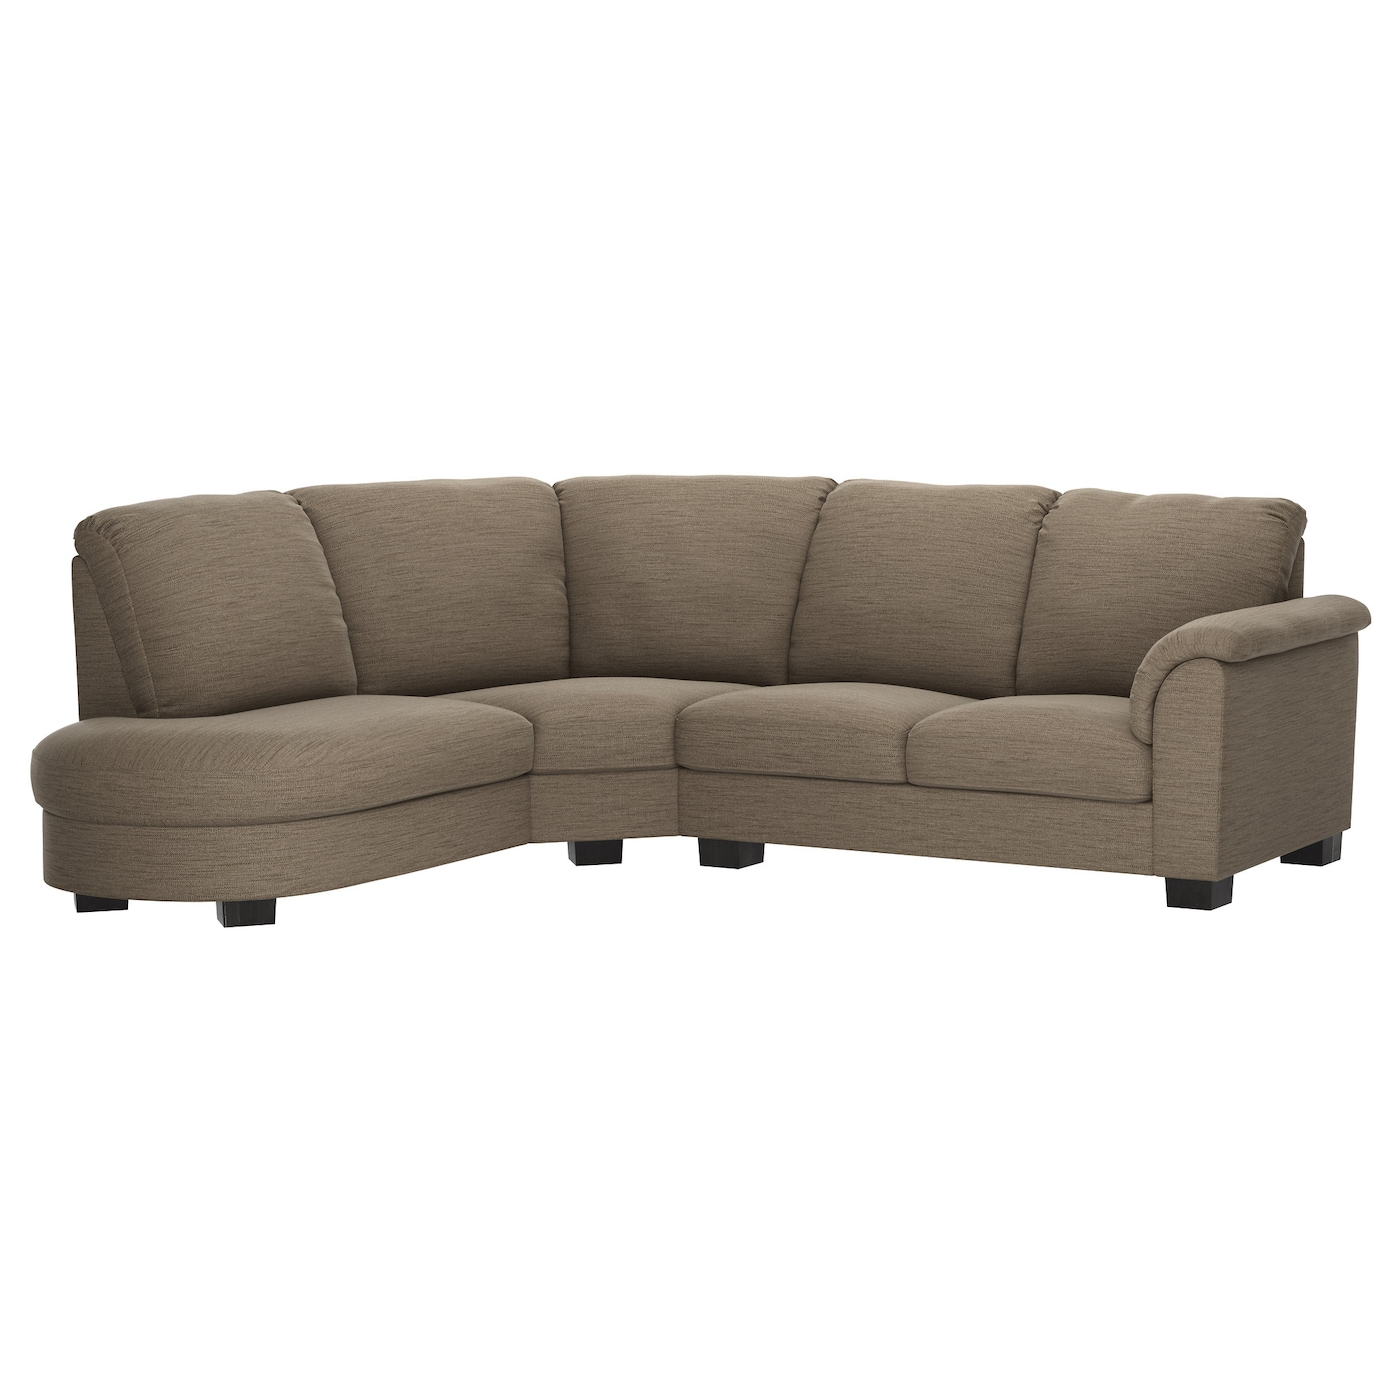 Tidafors corner sofa with arm right hensta light brown ikea for Ikea corner sofa